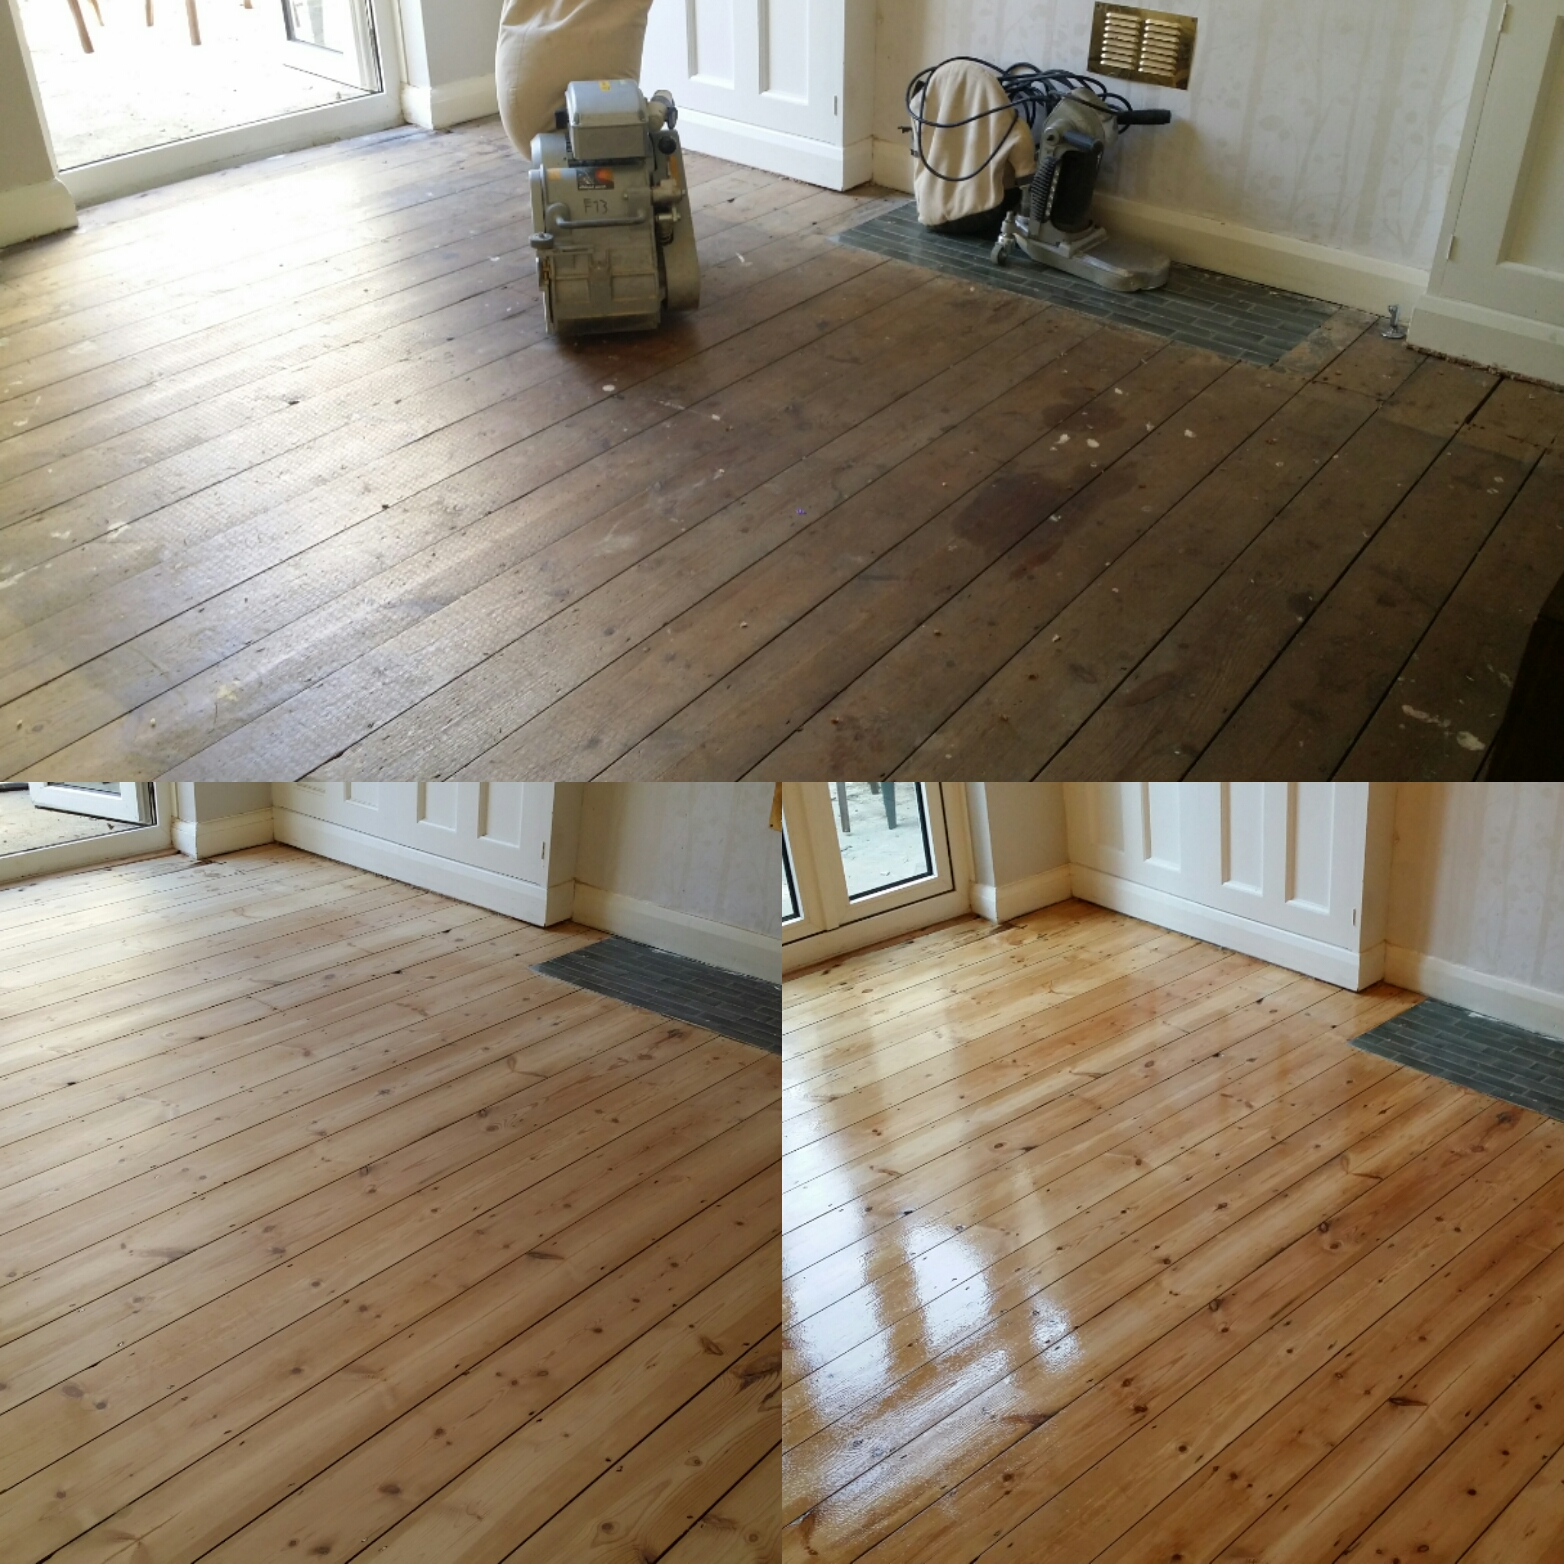 Essex Floor Sanding Services